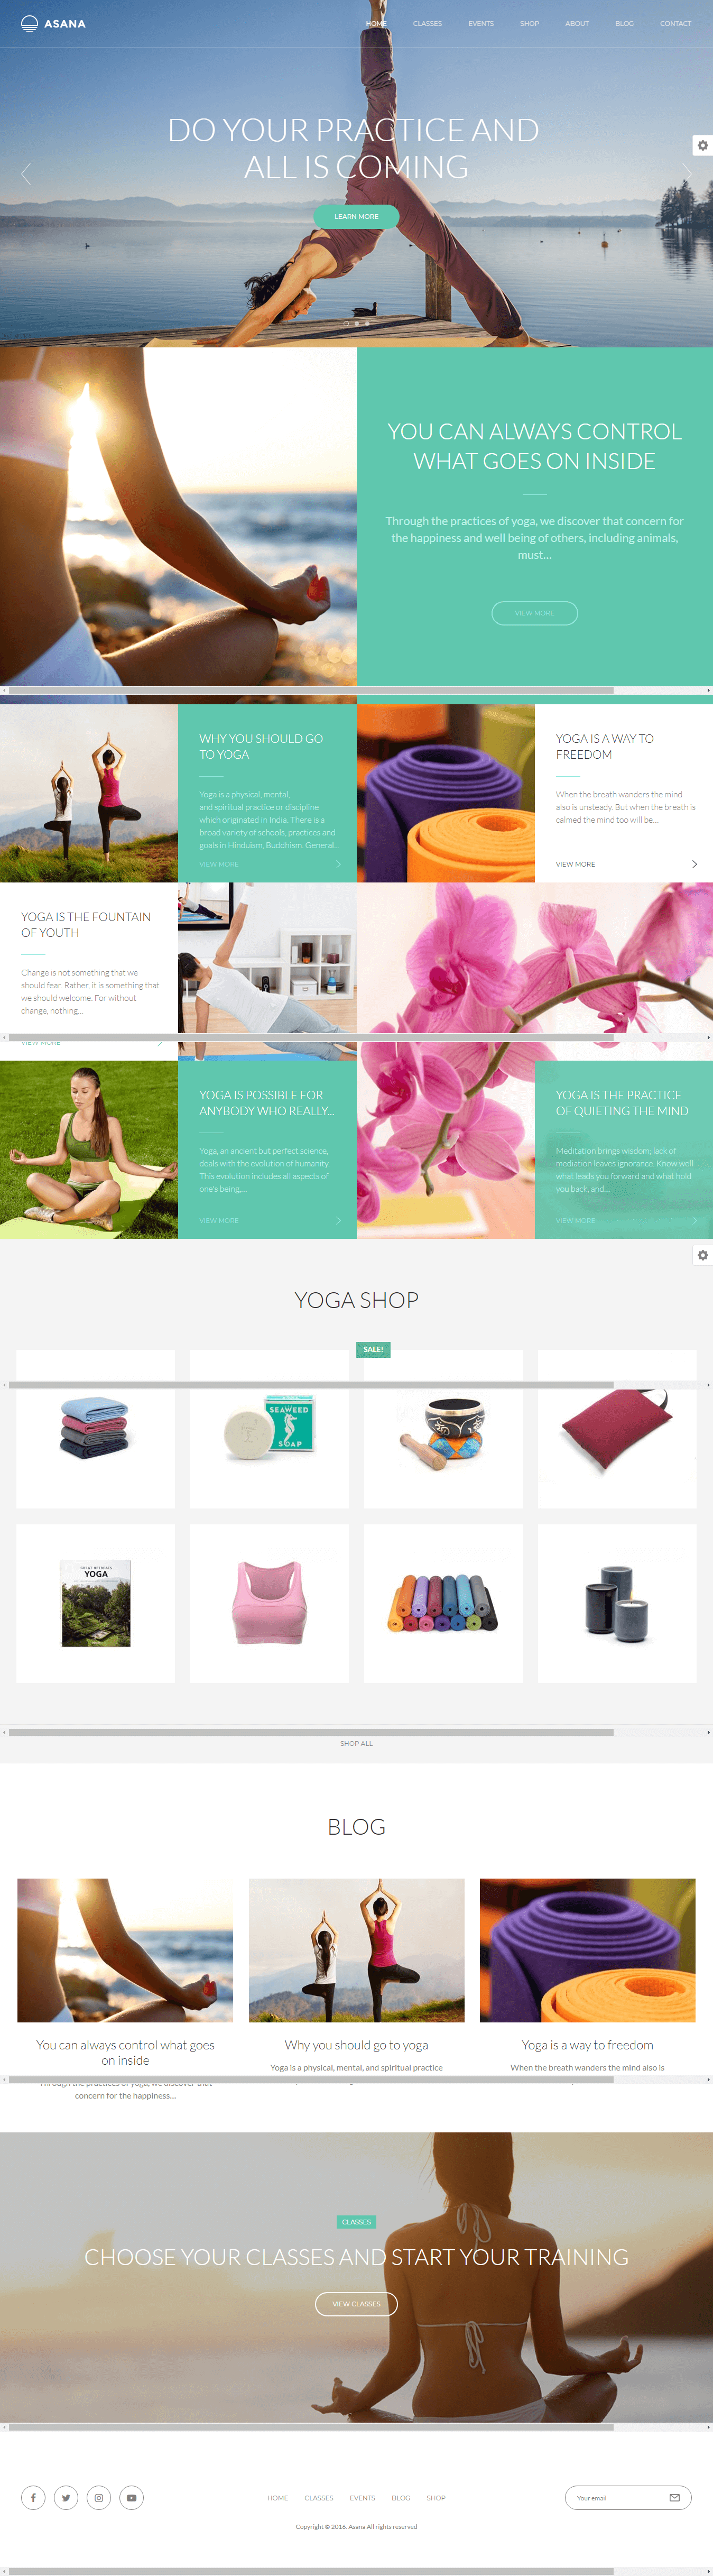 Asana -Best Premium Sports WordPress Theme